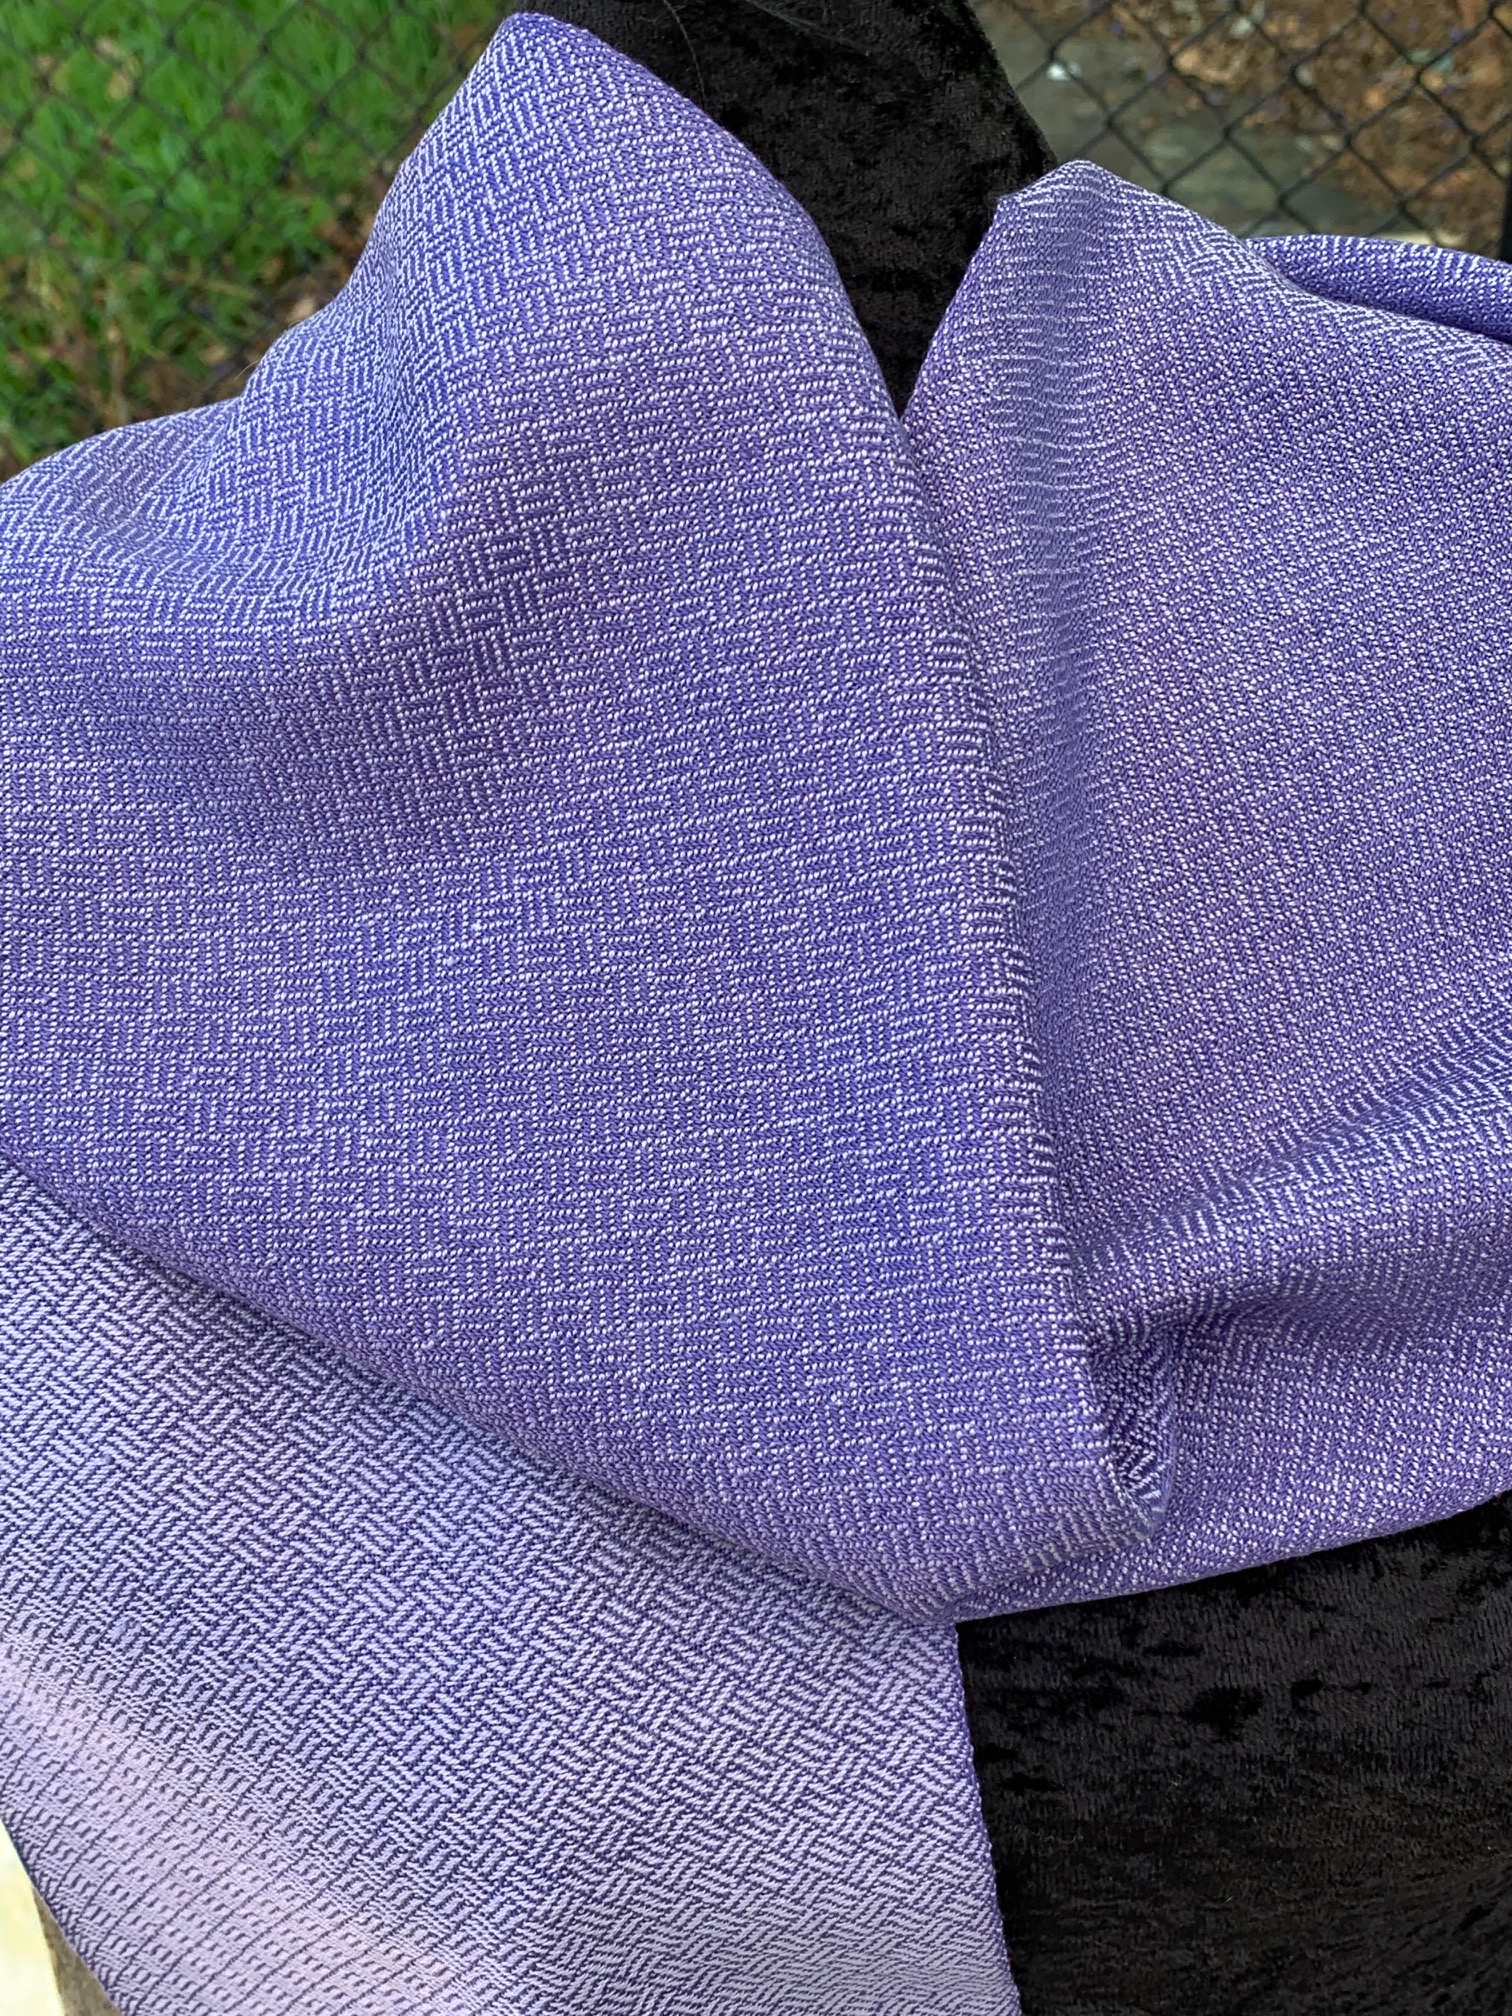 Jacaranda cotton scarf handwoven by Helen Wilder.